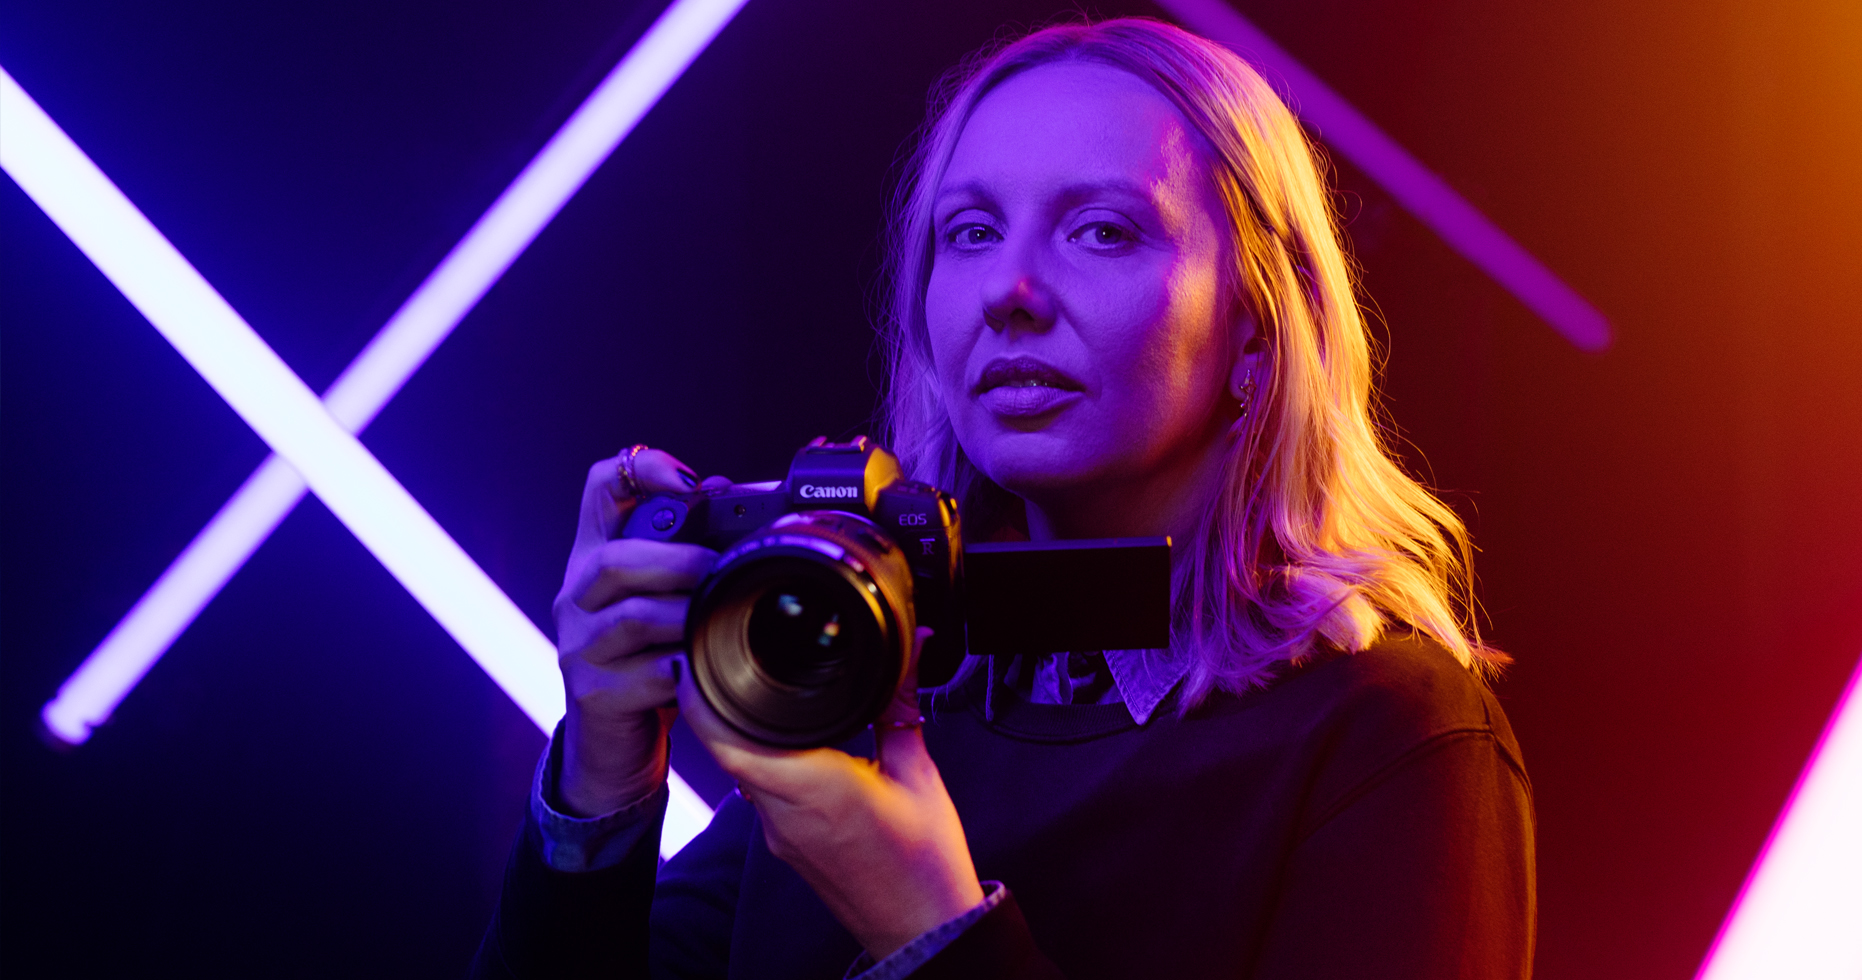 Maria Eriksson holds her Canon EOS R Camera in hand. She is in a studio lit with neon lights.